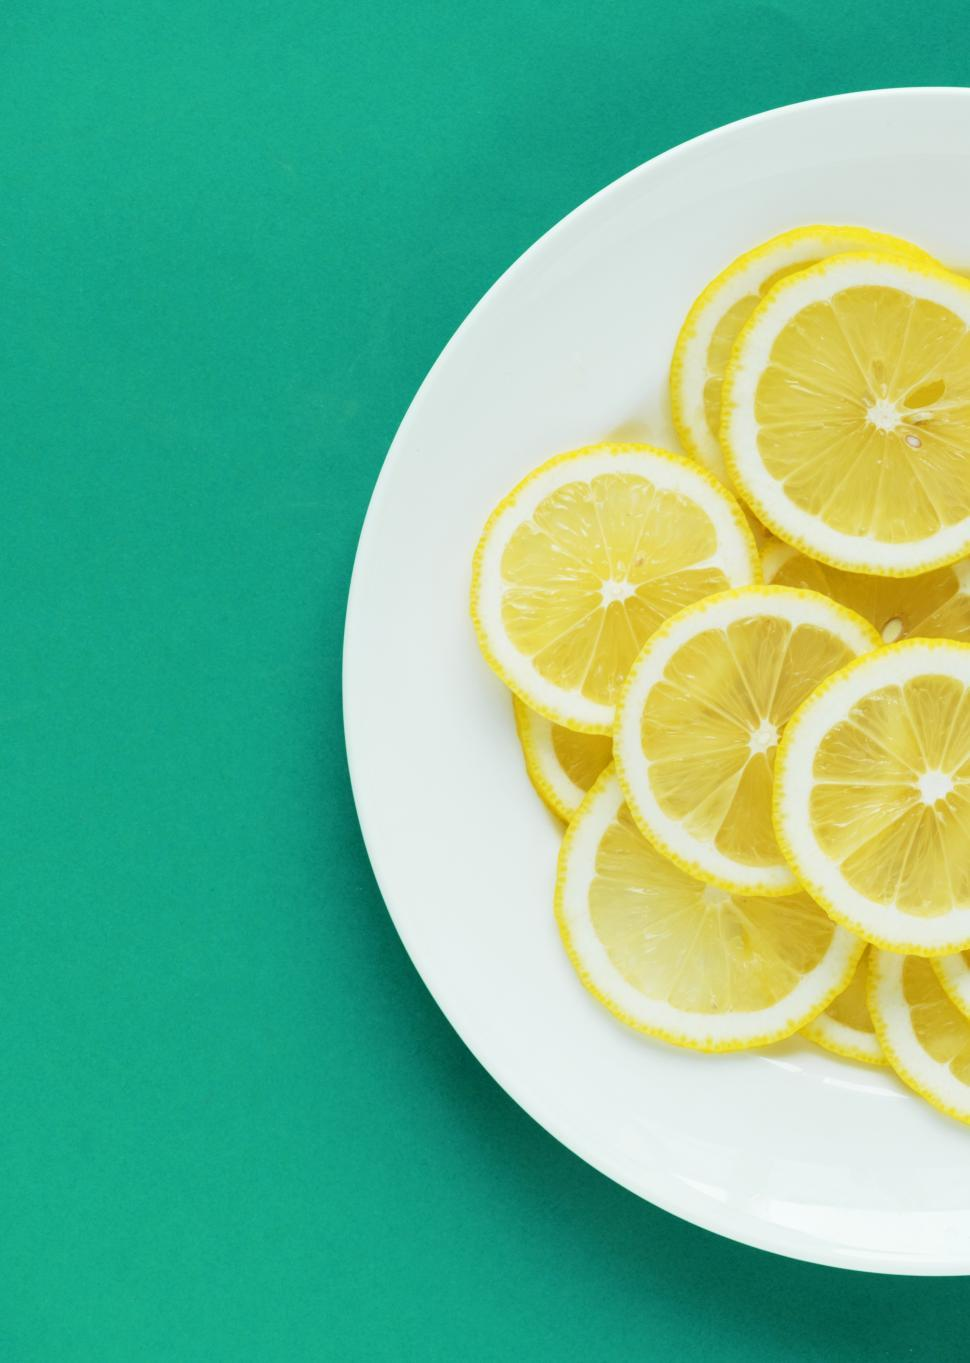 Download Free Stock HD Photo of Flat lay of lemon slices on white plate, partial view Online